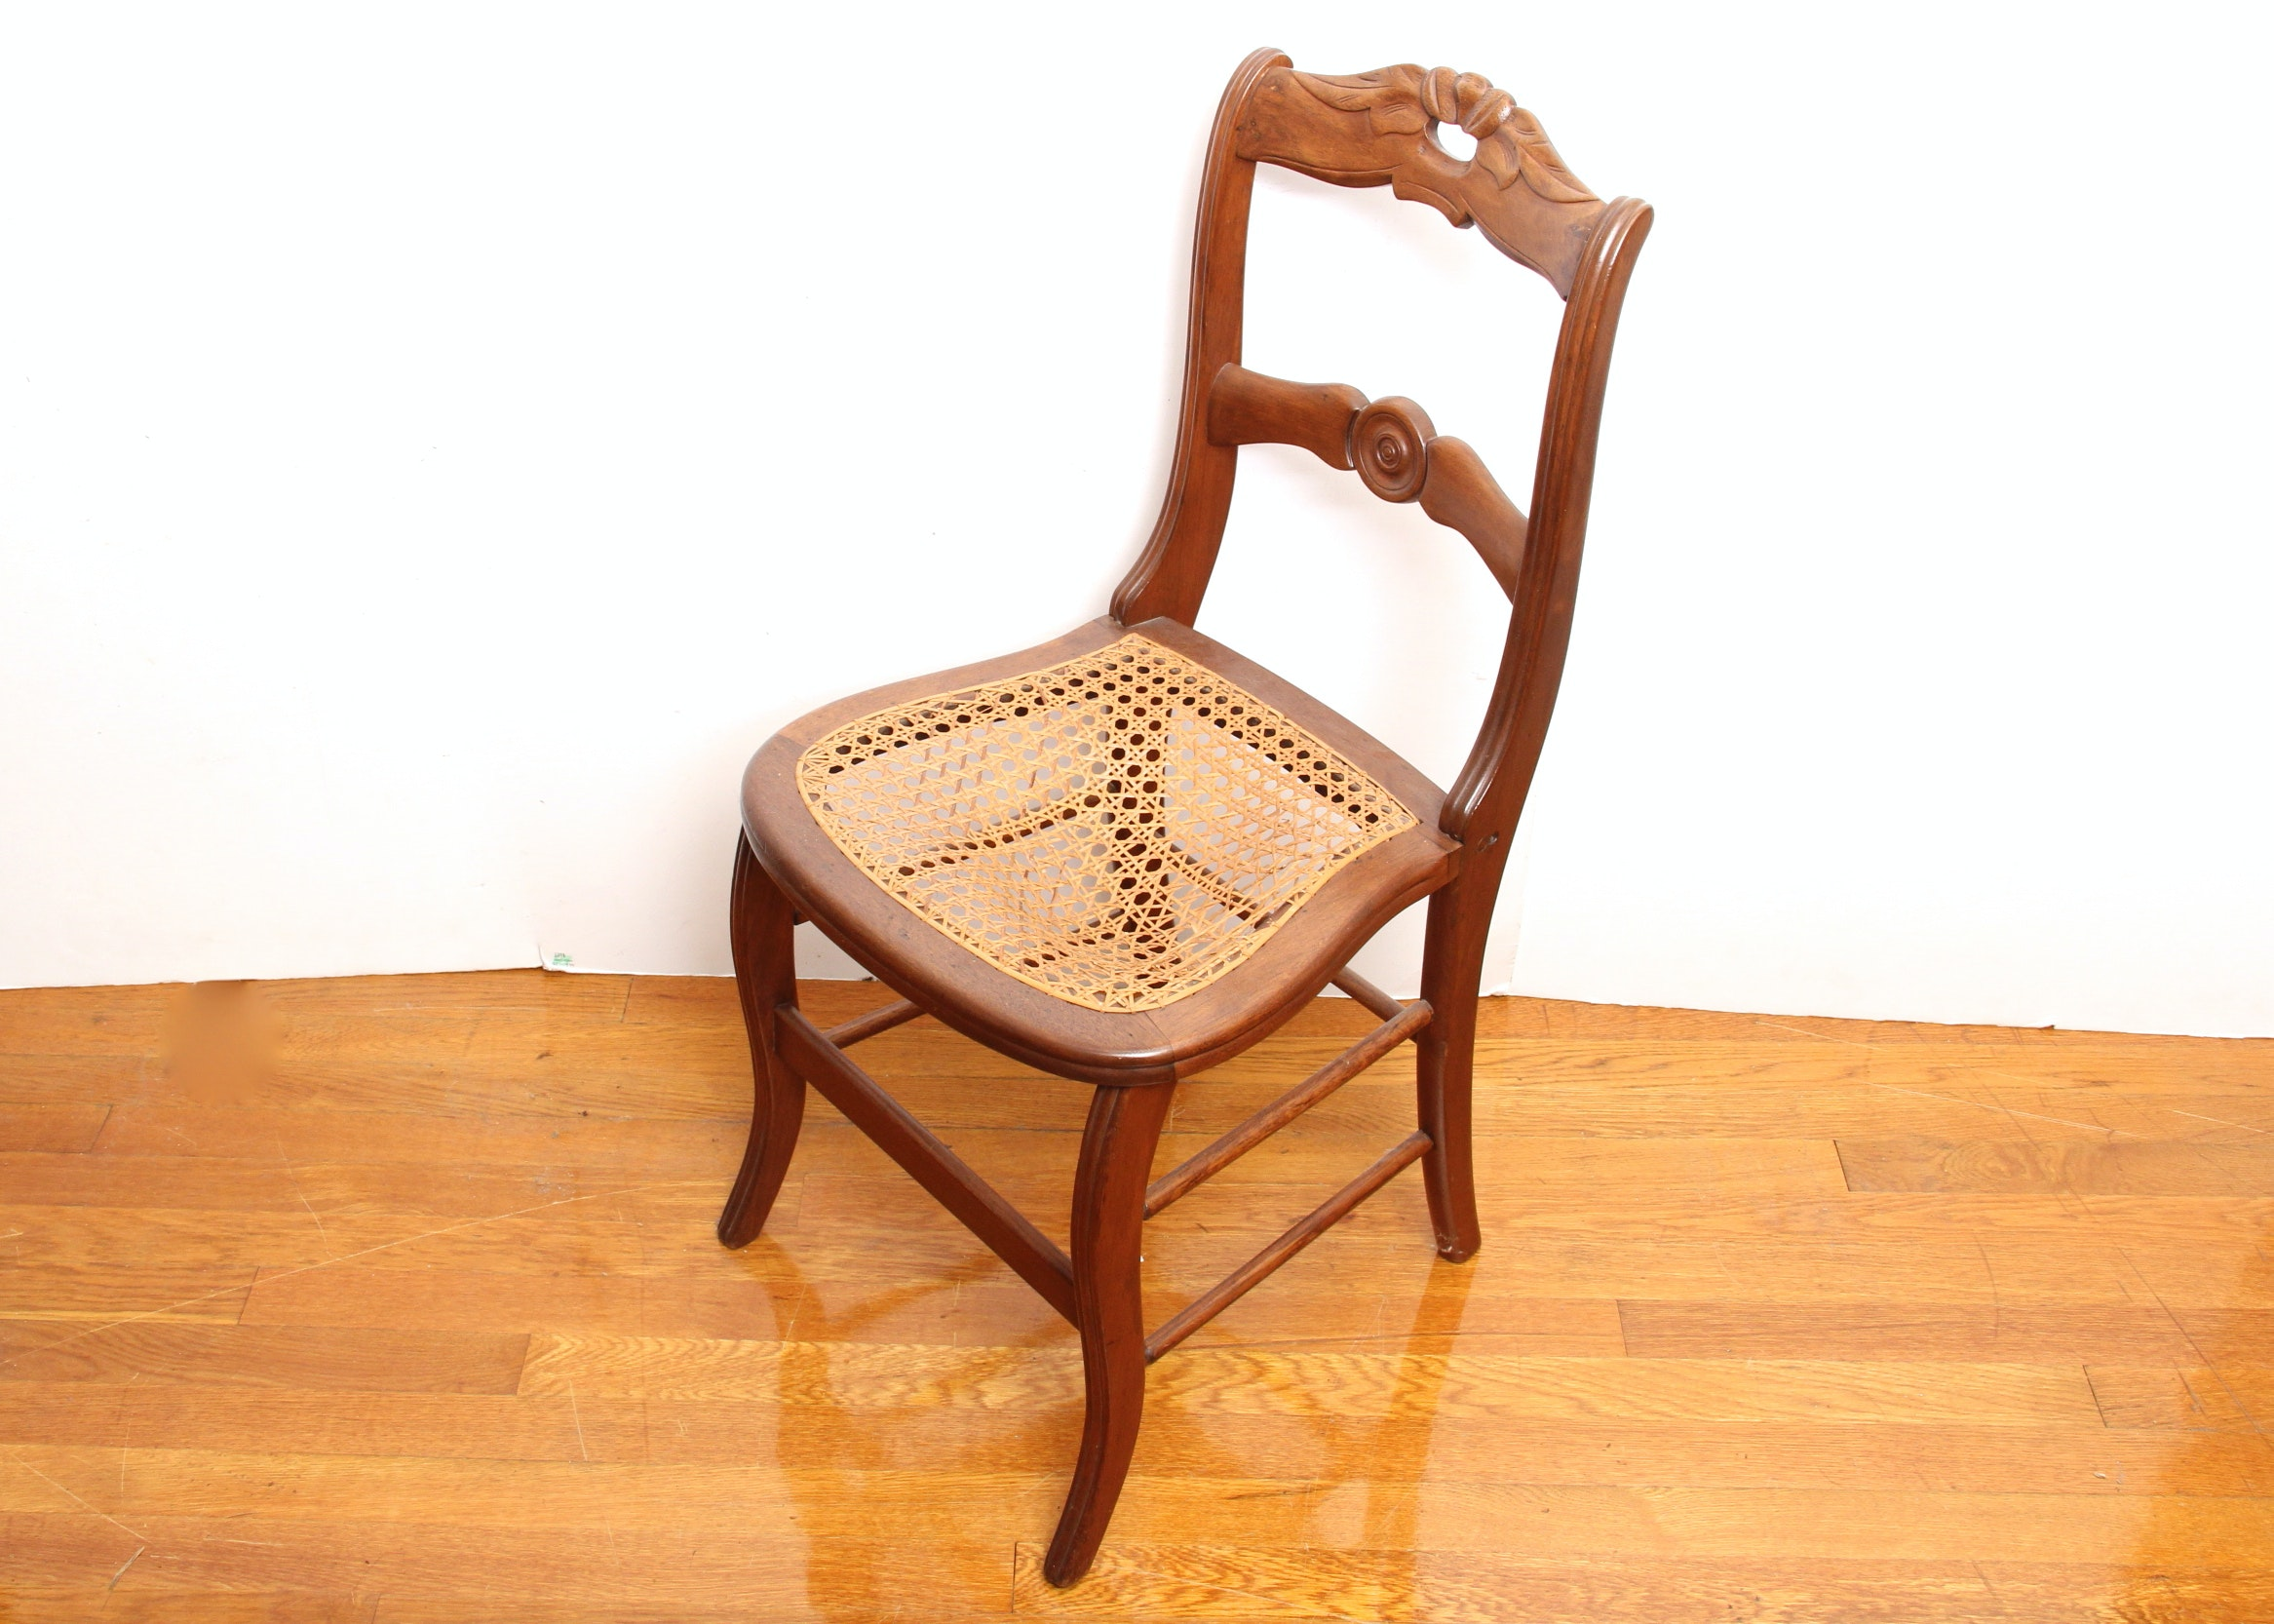 Antique Cane Seat Chairs Antique Furniture : IMG7126JPGixlibrb 11 from antiquefurnituredesigns.com size 880 x 906 jpeg 131kB